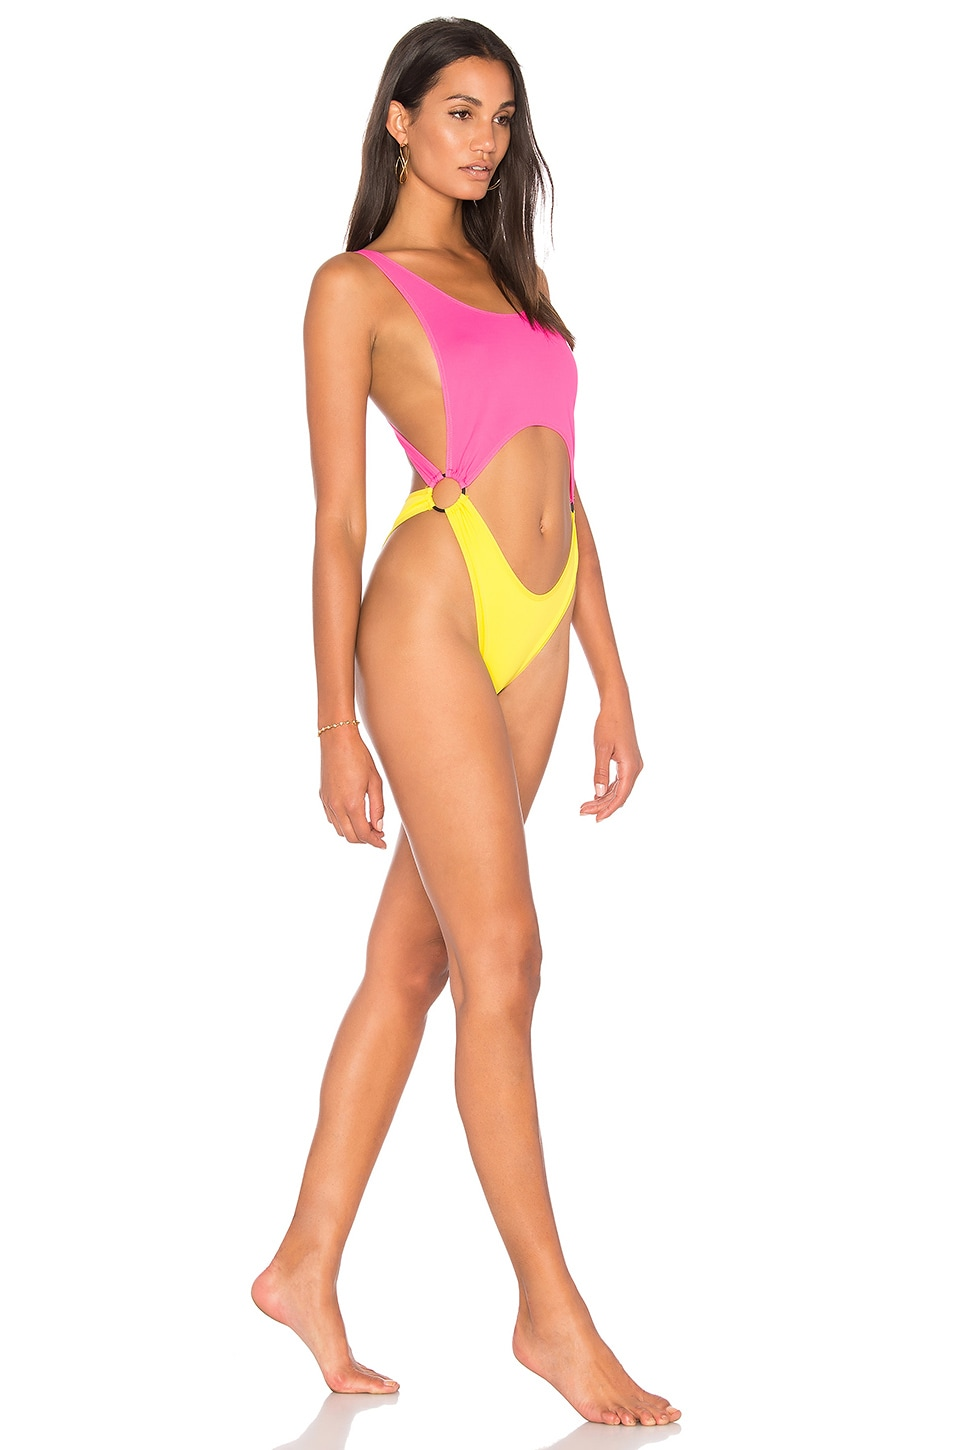 KENDALL + KYLIE x REVOLVE Cutout One Piece in Blazing Yellow & Neon Pink